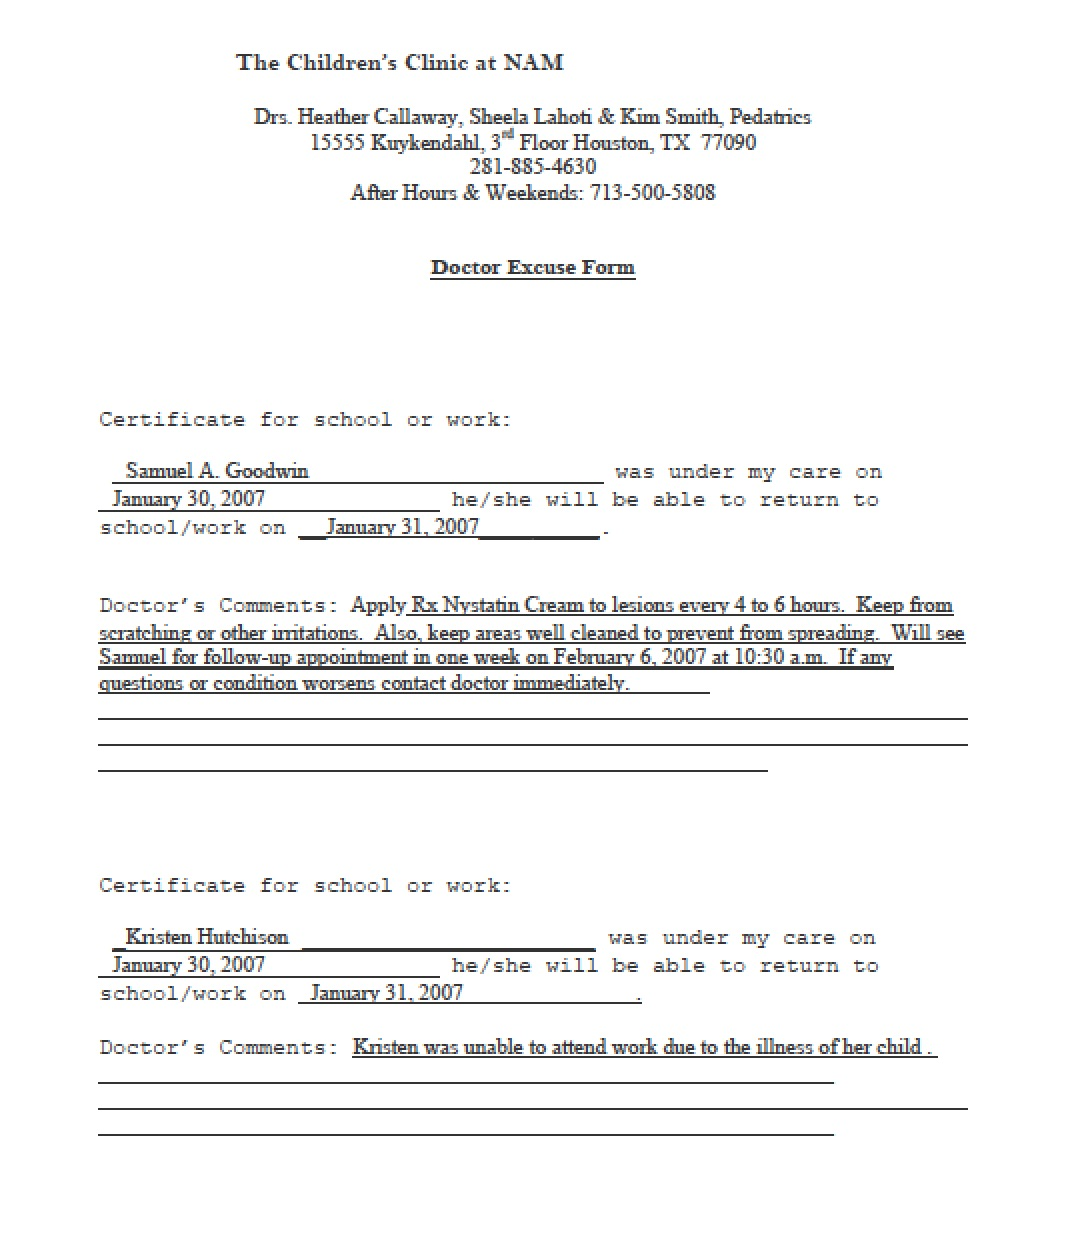 To work form printable return to work doctors note form medical - How To Get